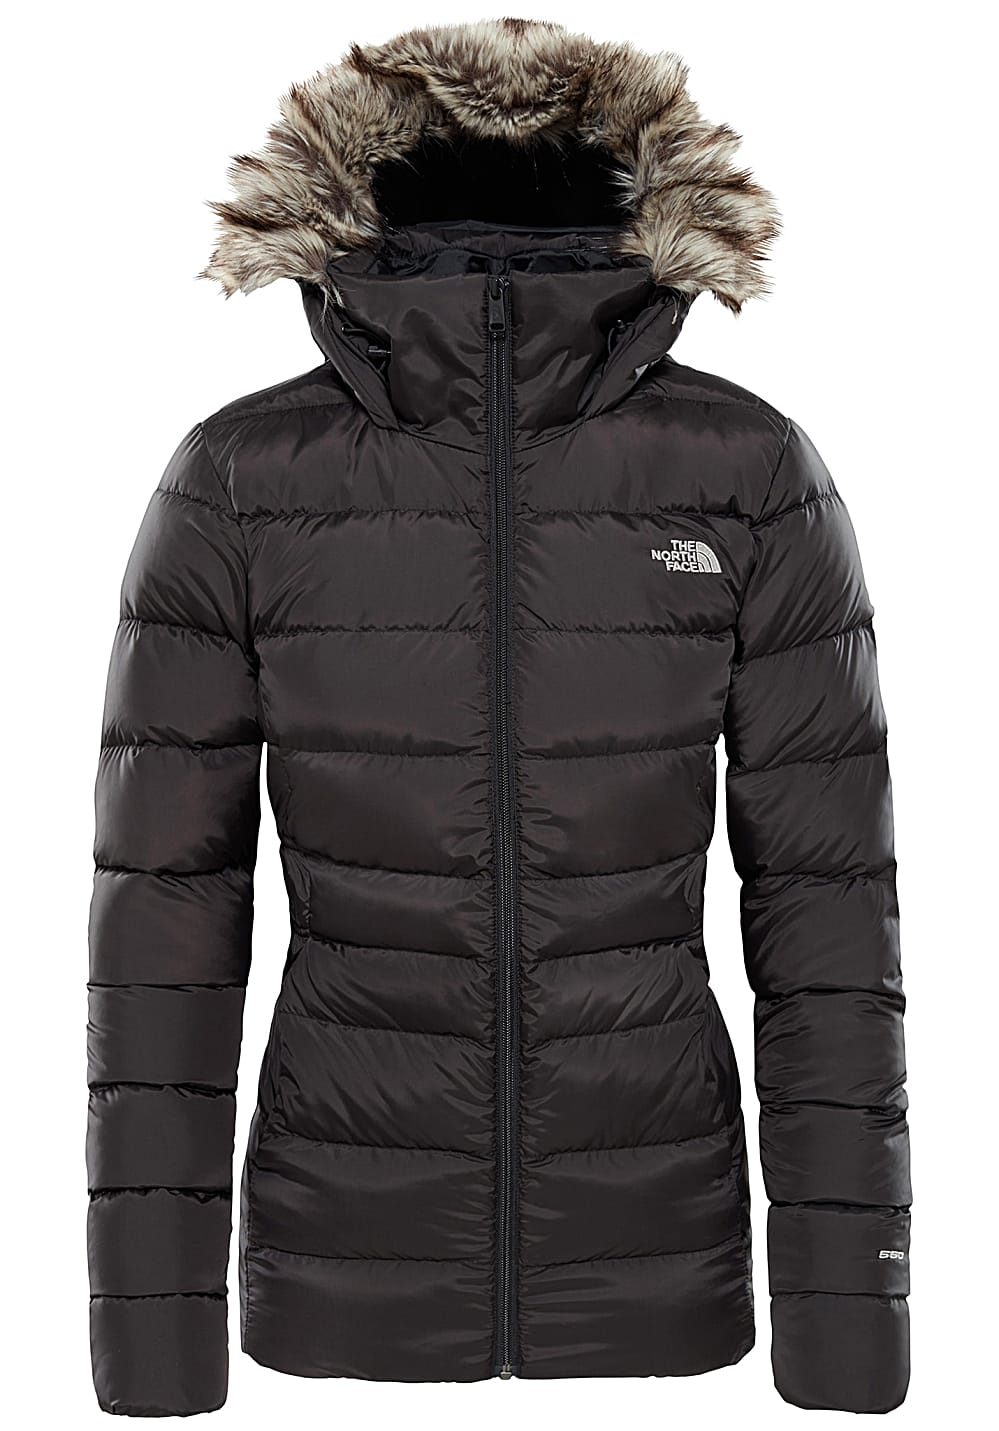 THE NORTH FACE Gotham II - Giacca outdoor per Donna - Nero - Planet ... a1d0fb1c82db